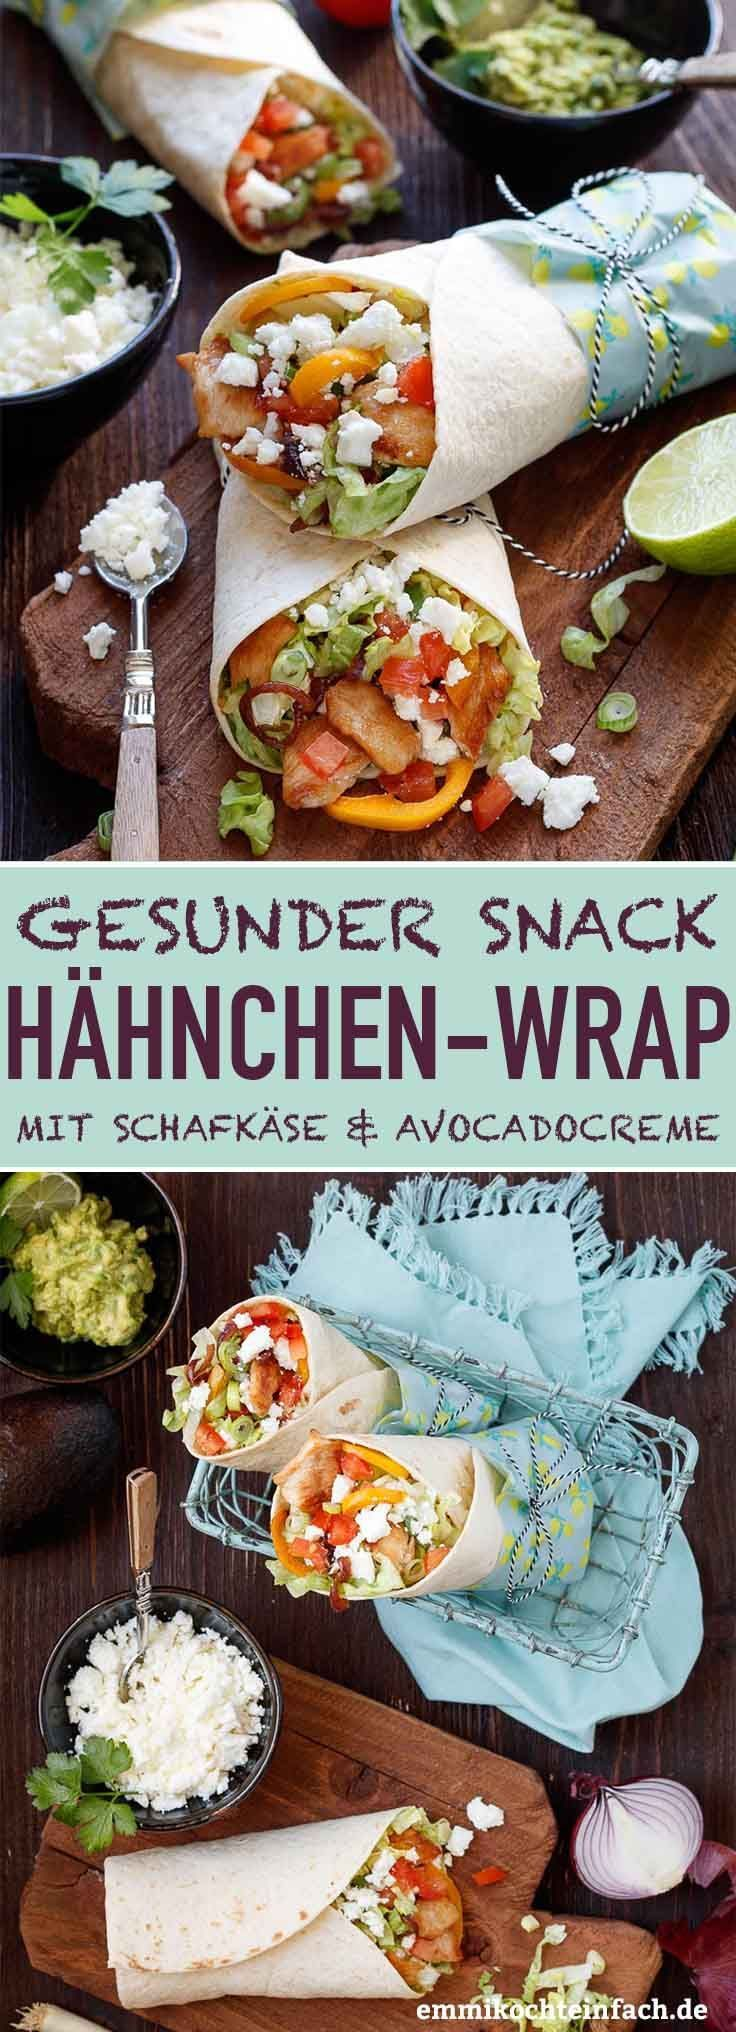 Wrap with chicken, sheep cheese and avocado cream Wrap with chicken, sheep cheese and avocado cream